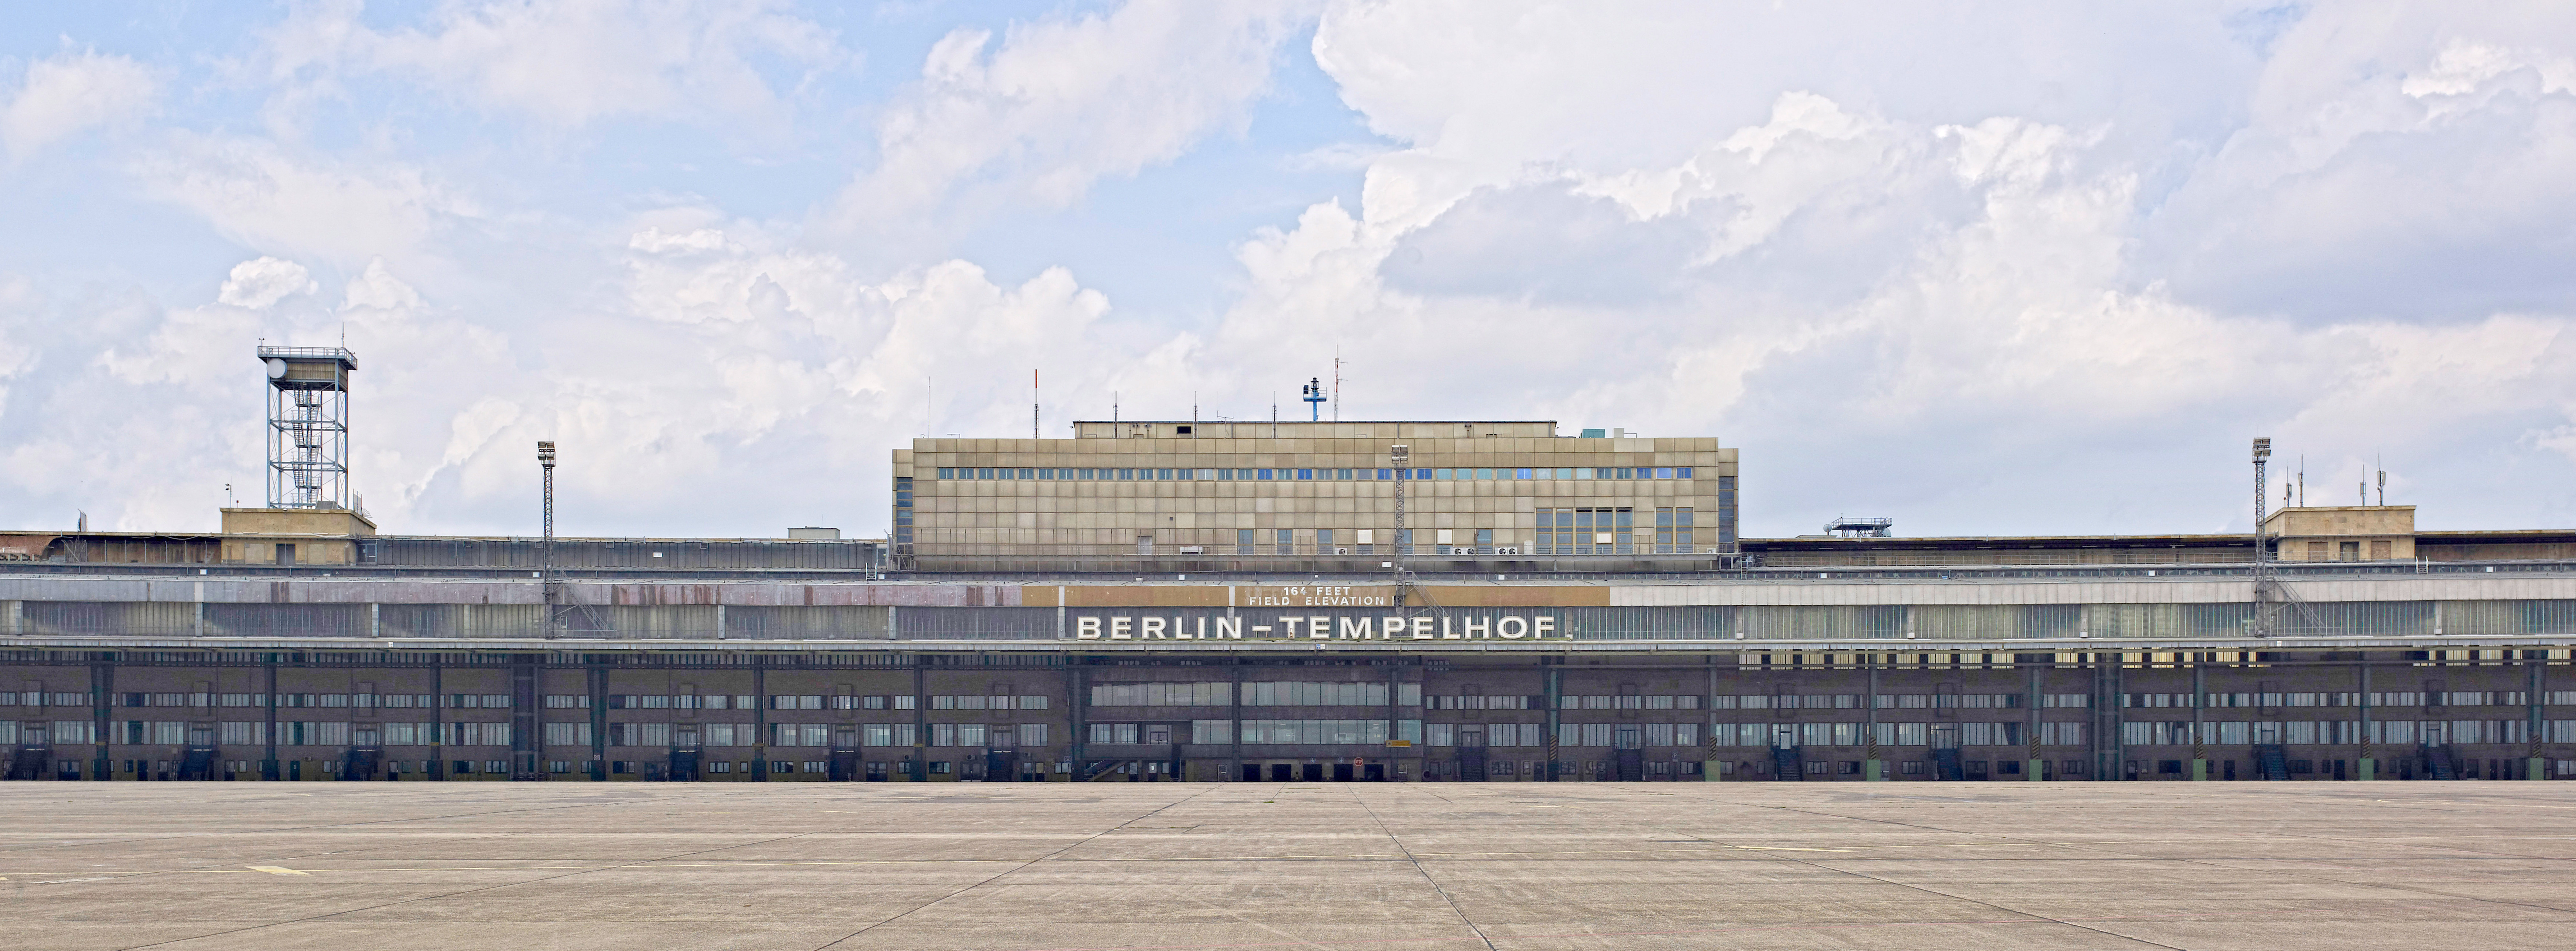 berlin templehof airport s fresh take off tammy tour guide. Black Bedroom Furniture Sets. Home Design Ideas